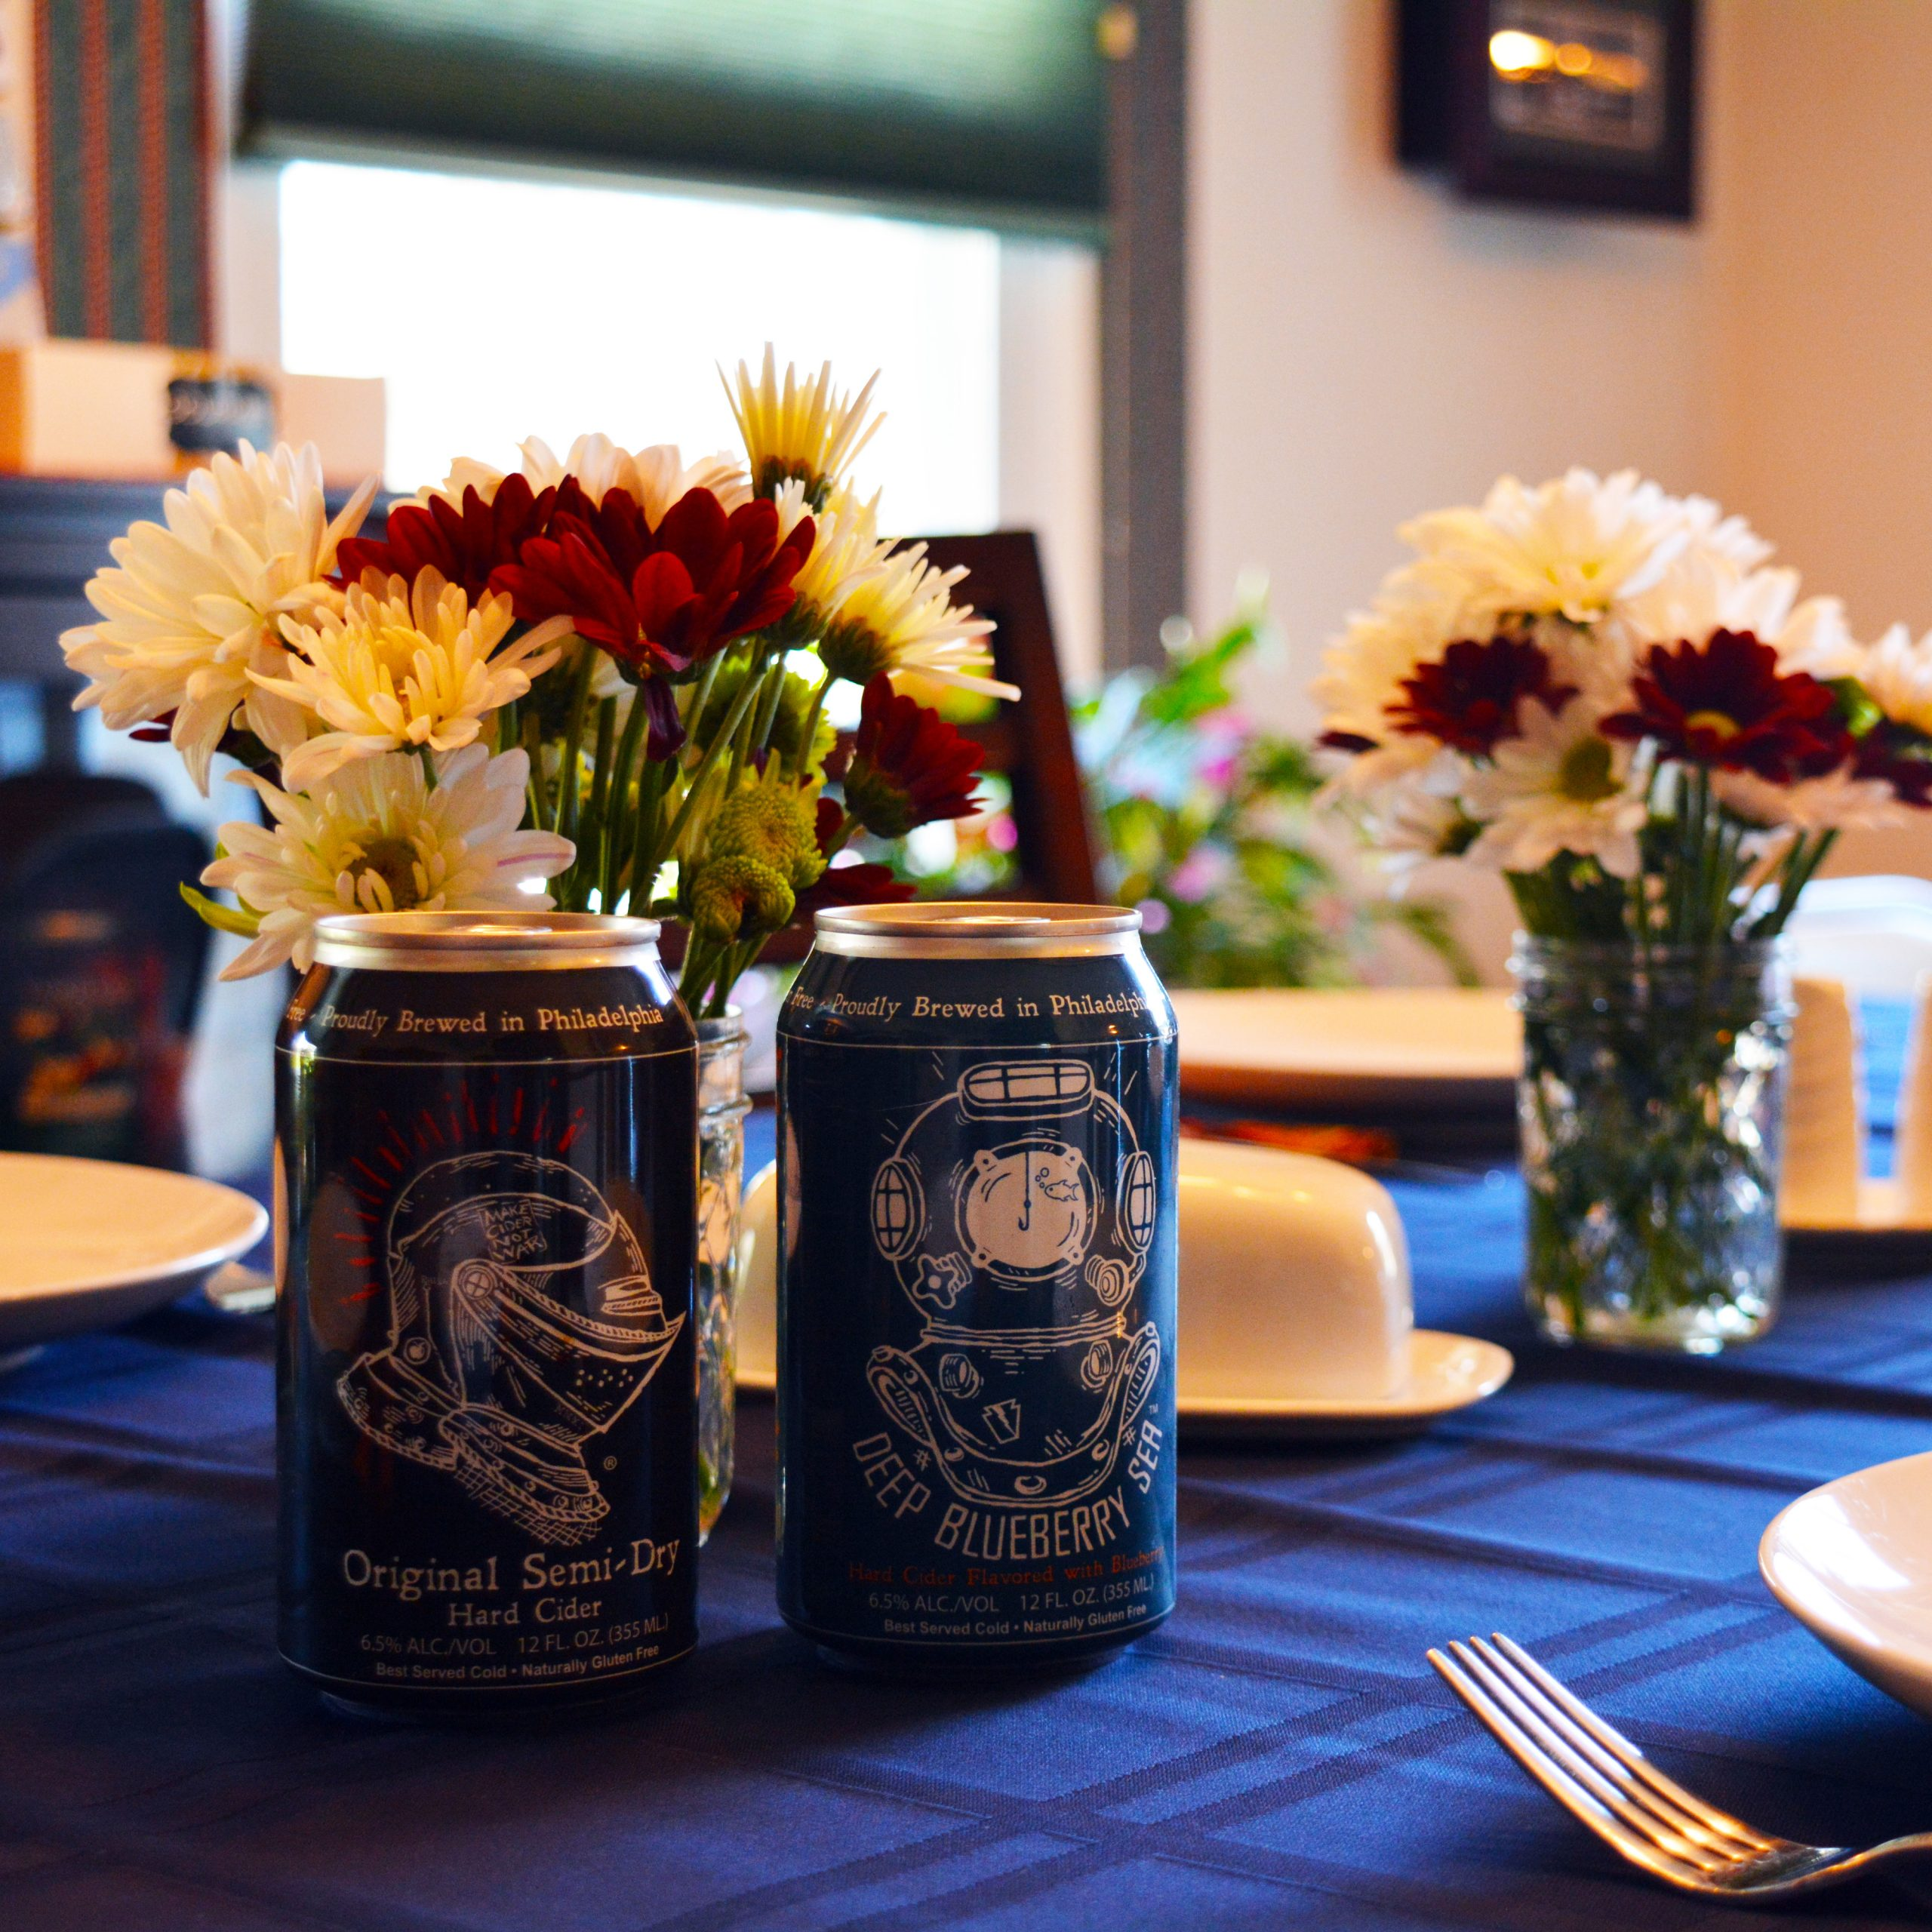 A photo of cans of Sir Charles Hard Cider on the dinner table